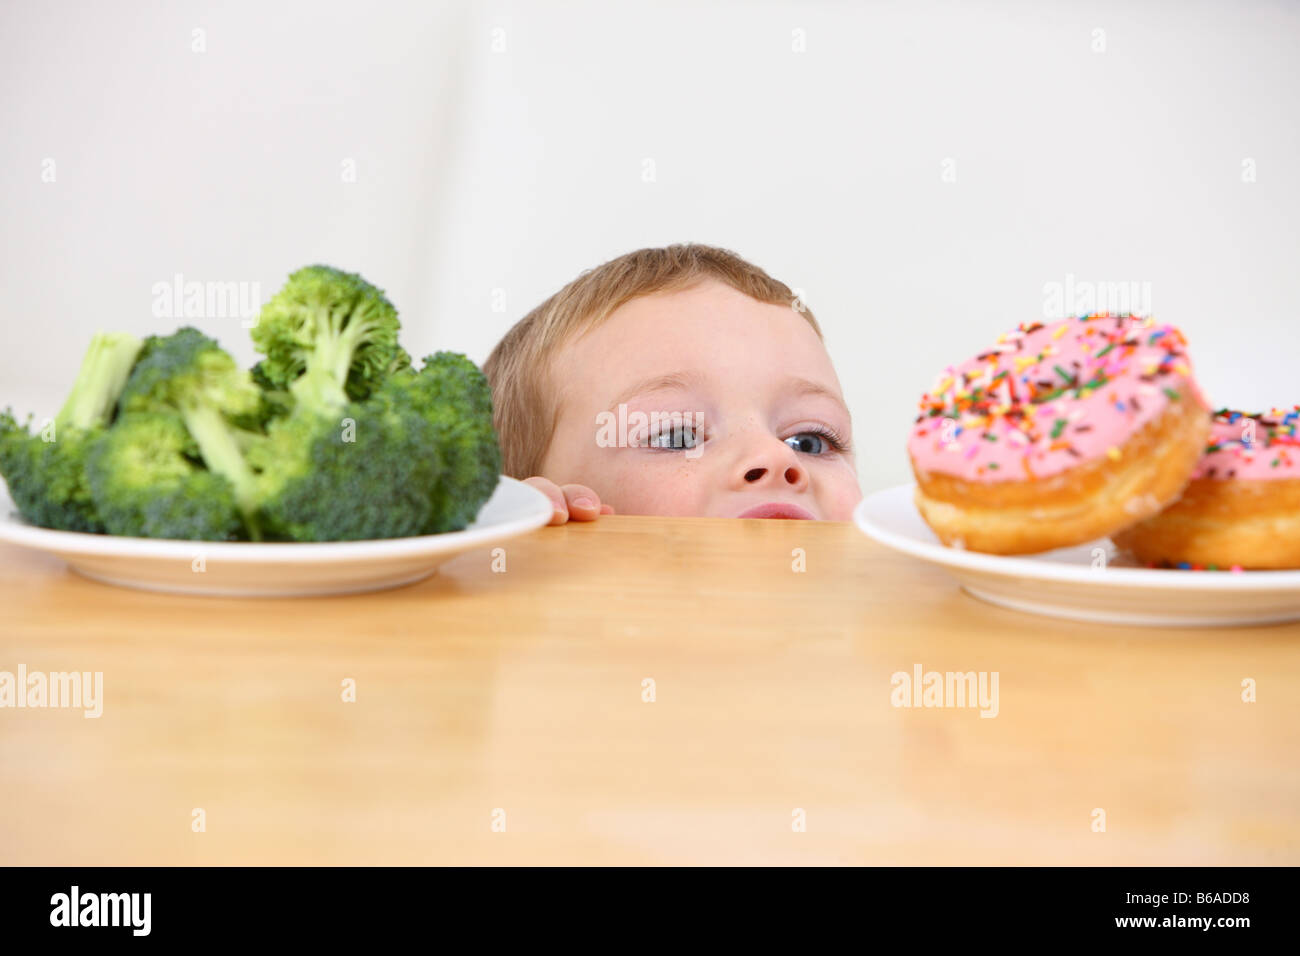 Young boy peeking over table at plates of donuts and broccoli - Stock Image